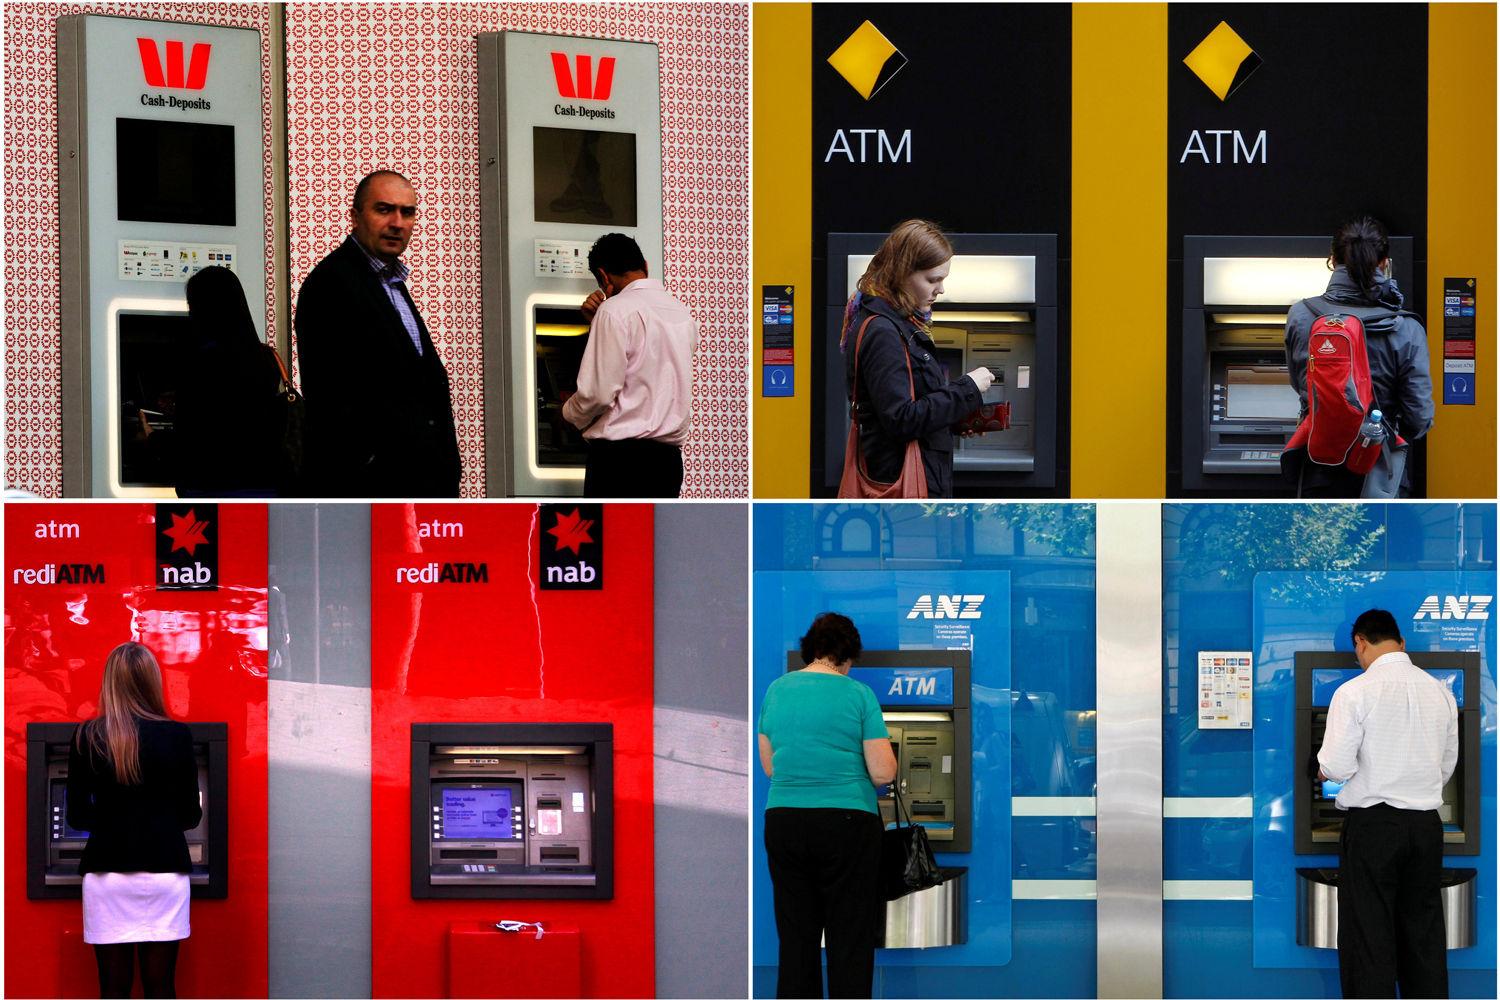 Australian banks set for boom as bad loans are reined in